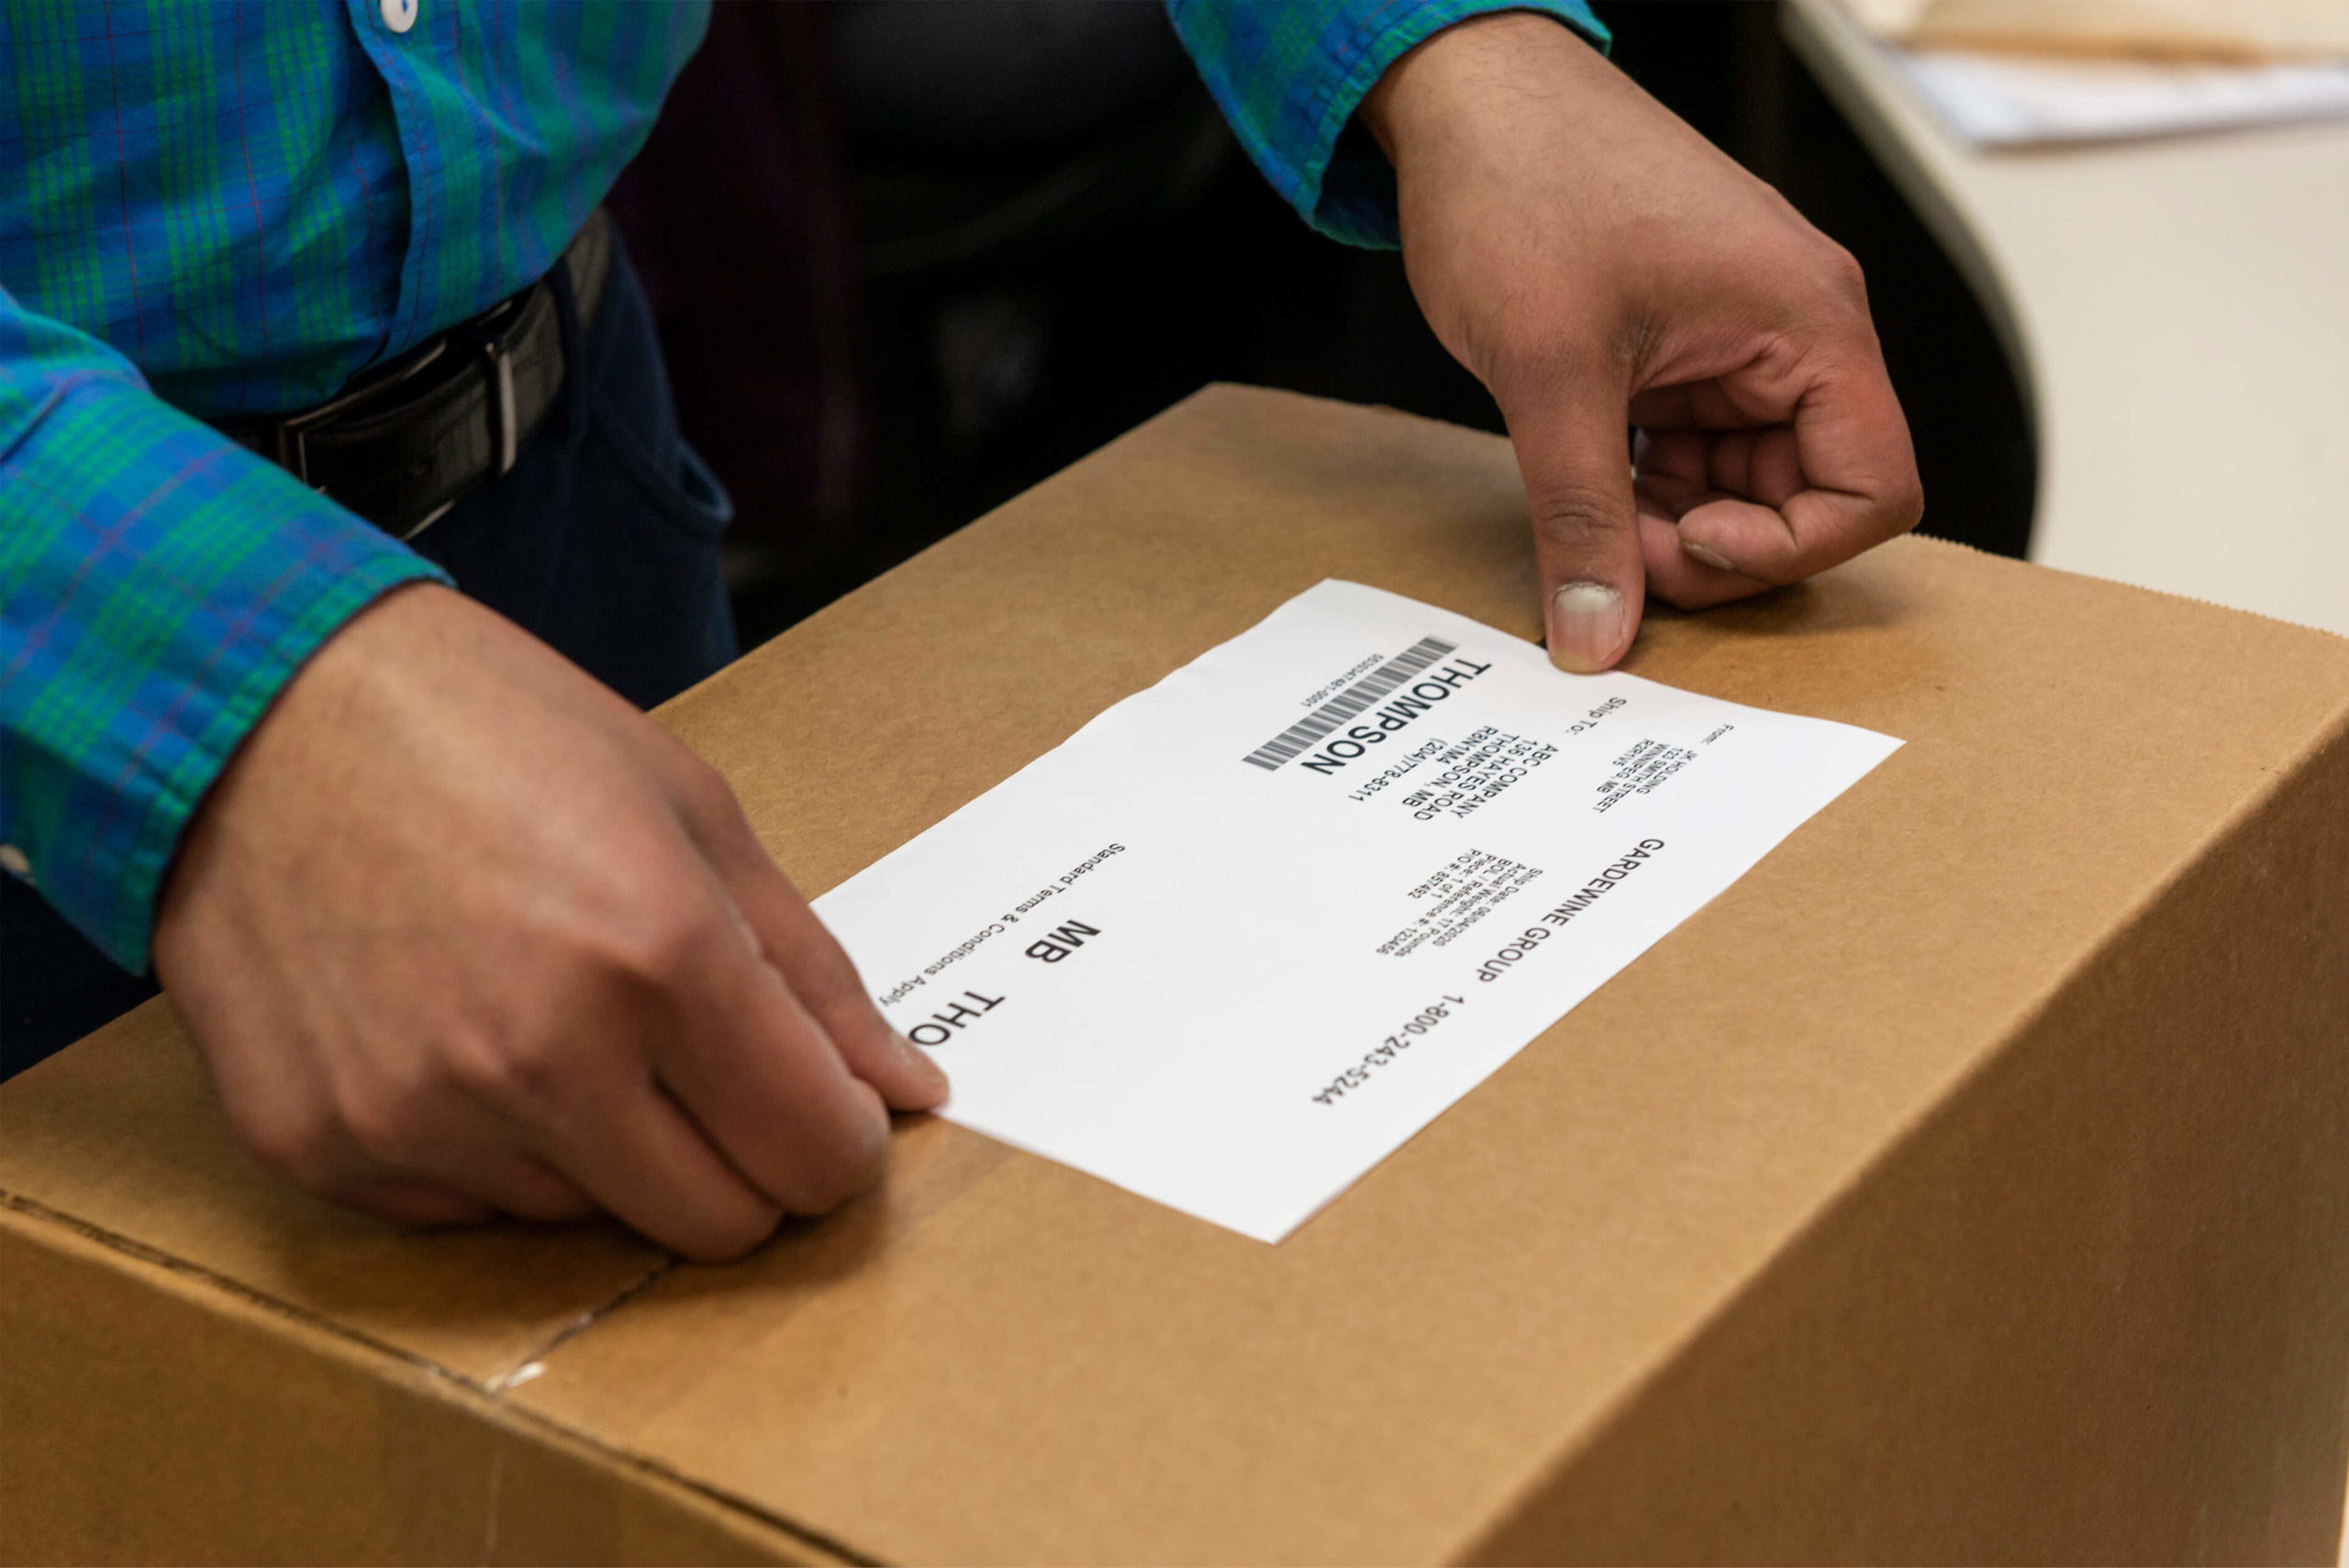 Shipping Label System for Real Time Tracking